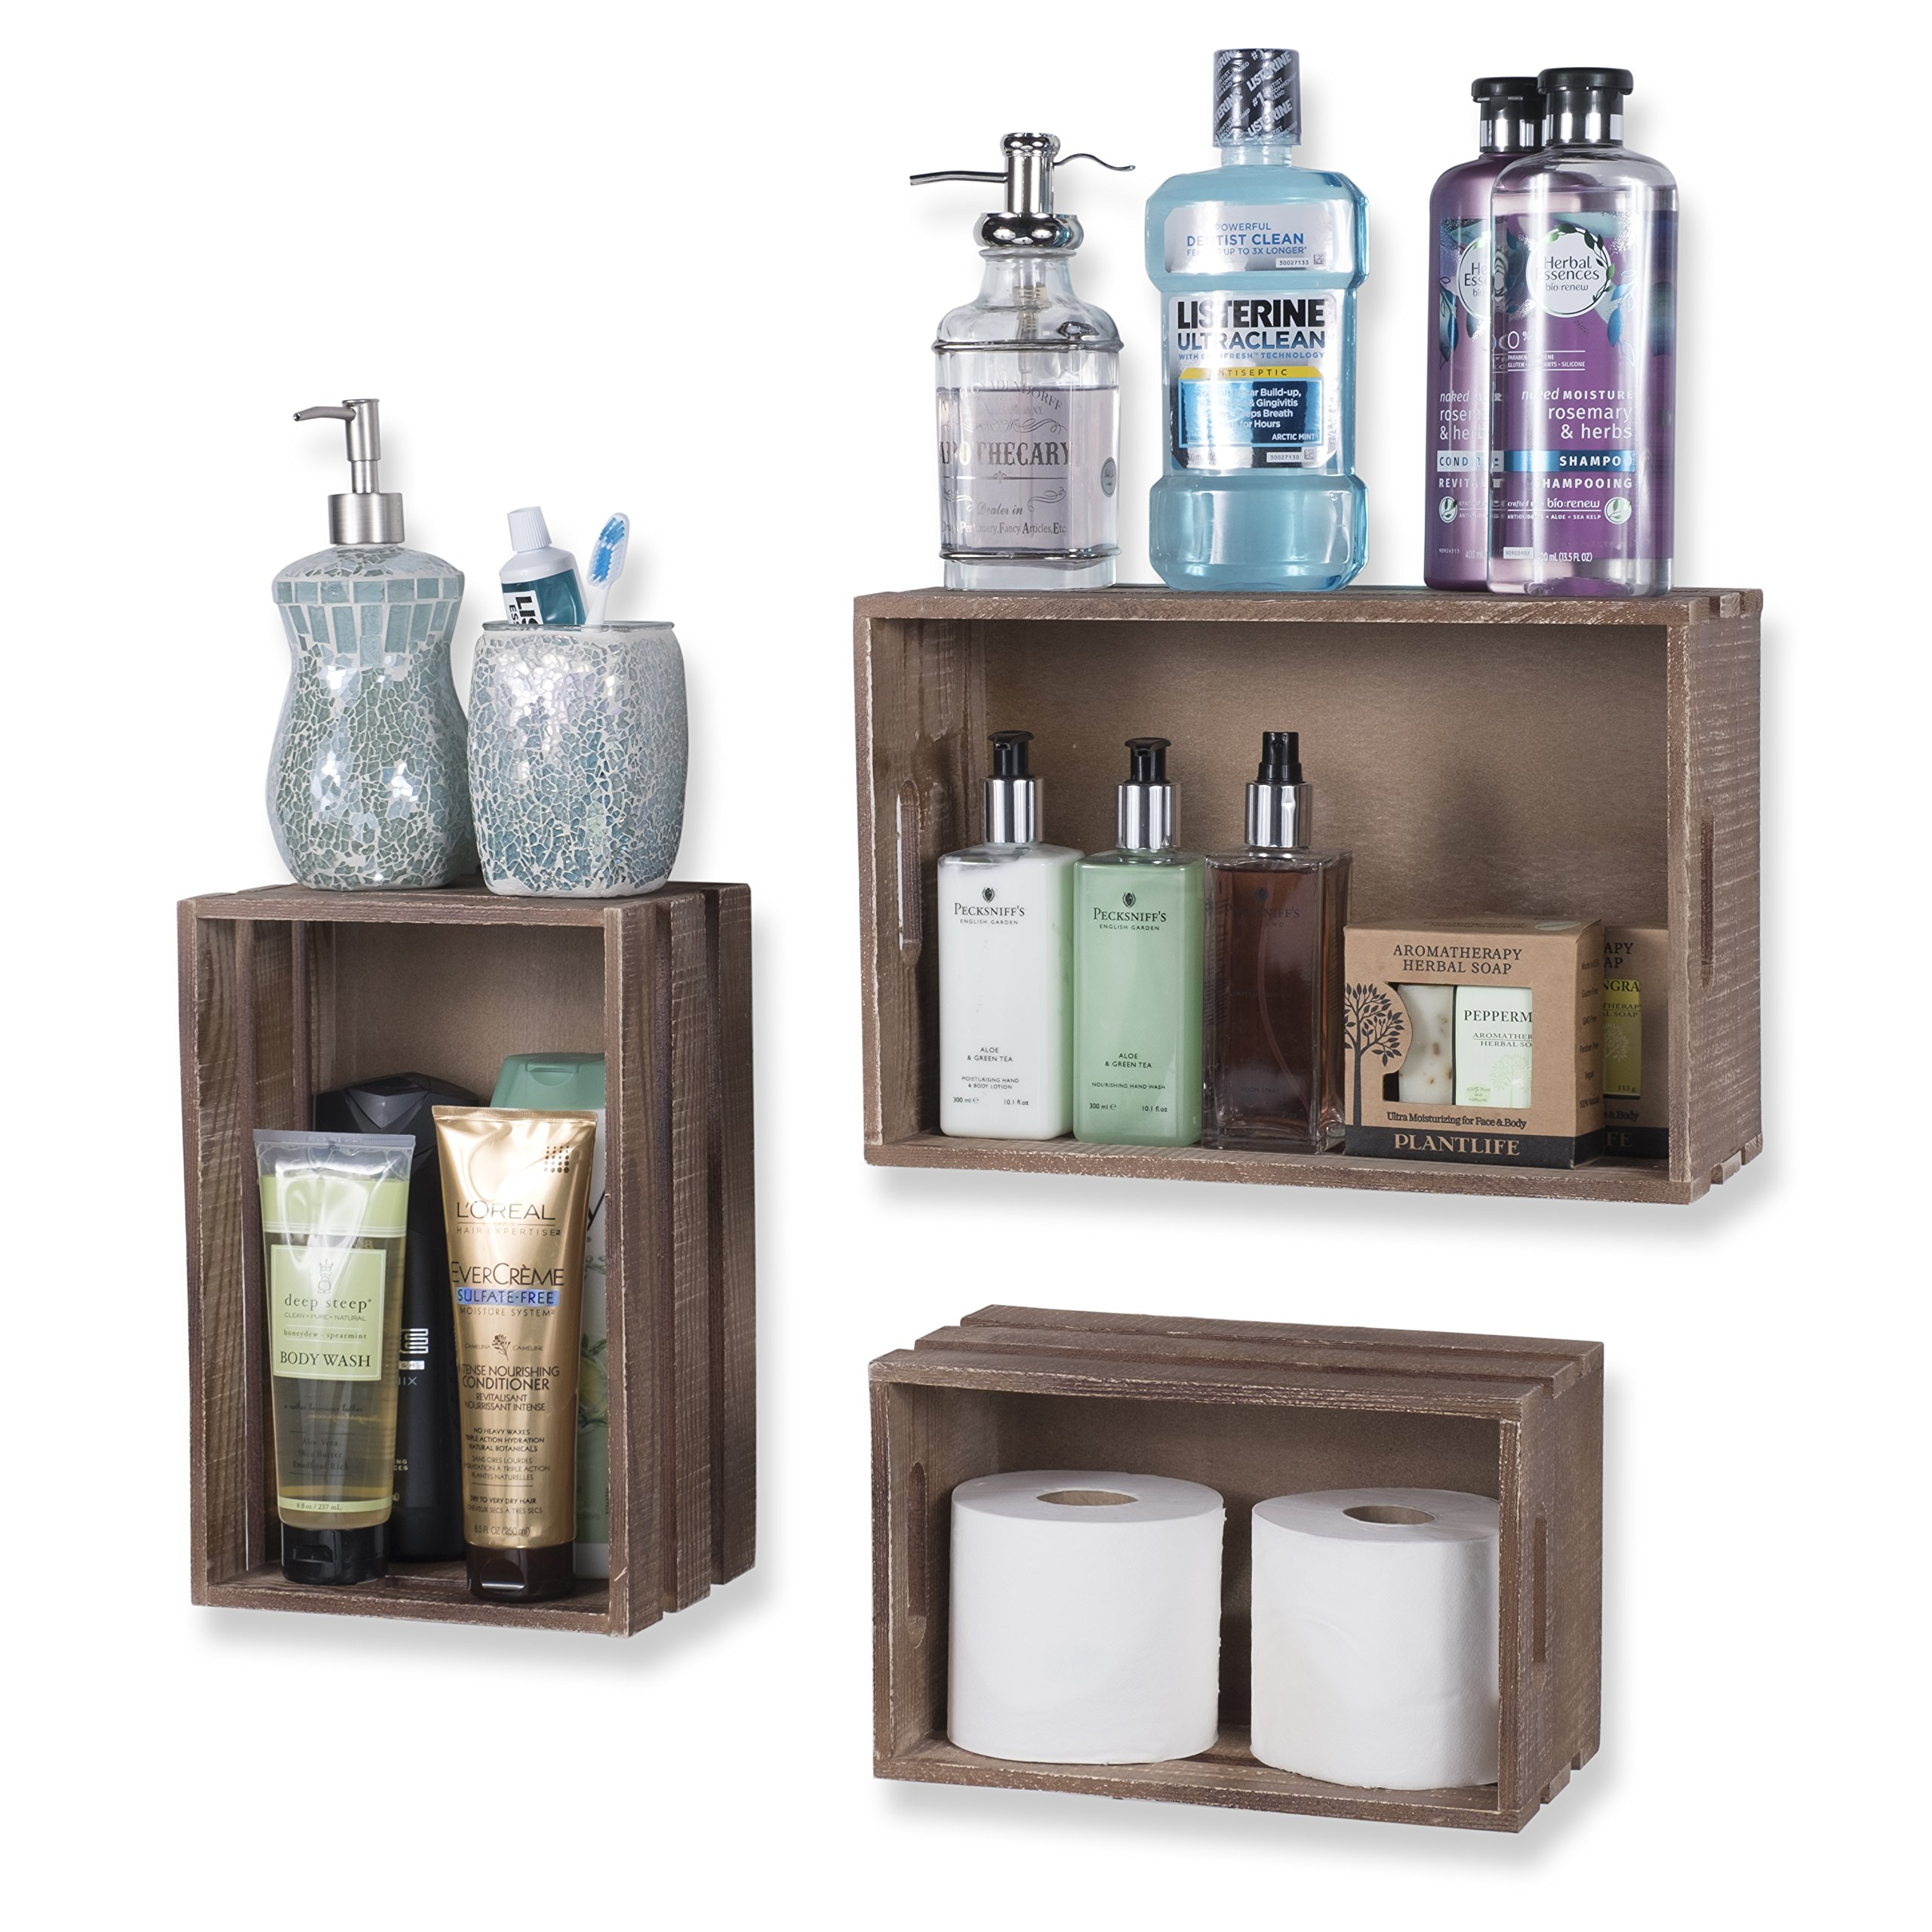 WALLNITURE Rustic Wine Rack Storage Baskets Wall Mount Wooden Crates Walnut Set of 9 by Wallniture (Image #4)